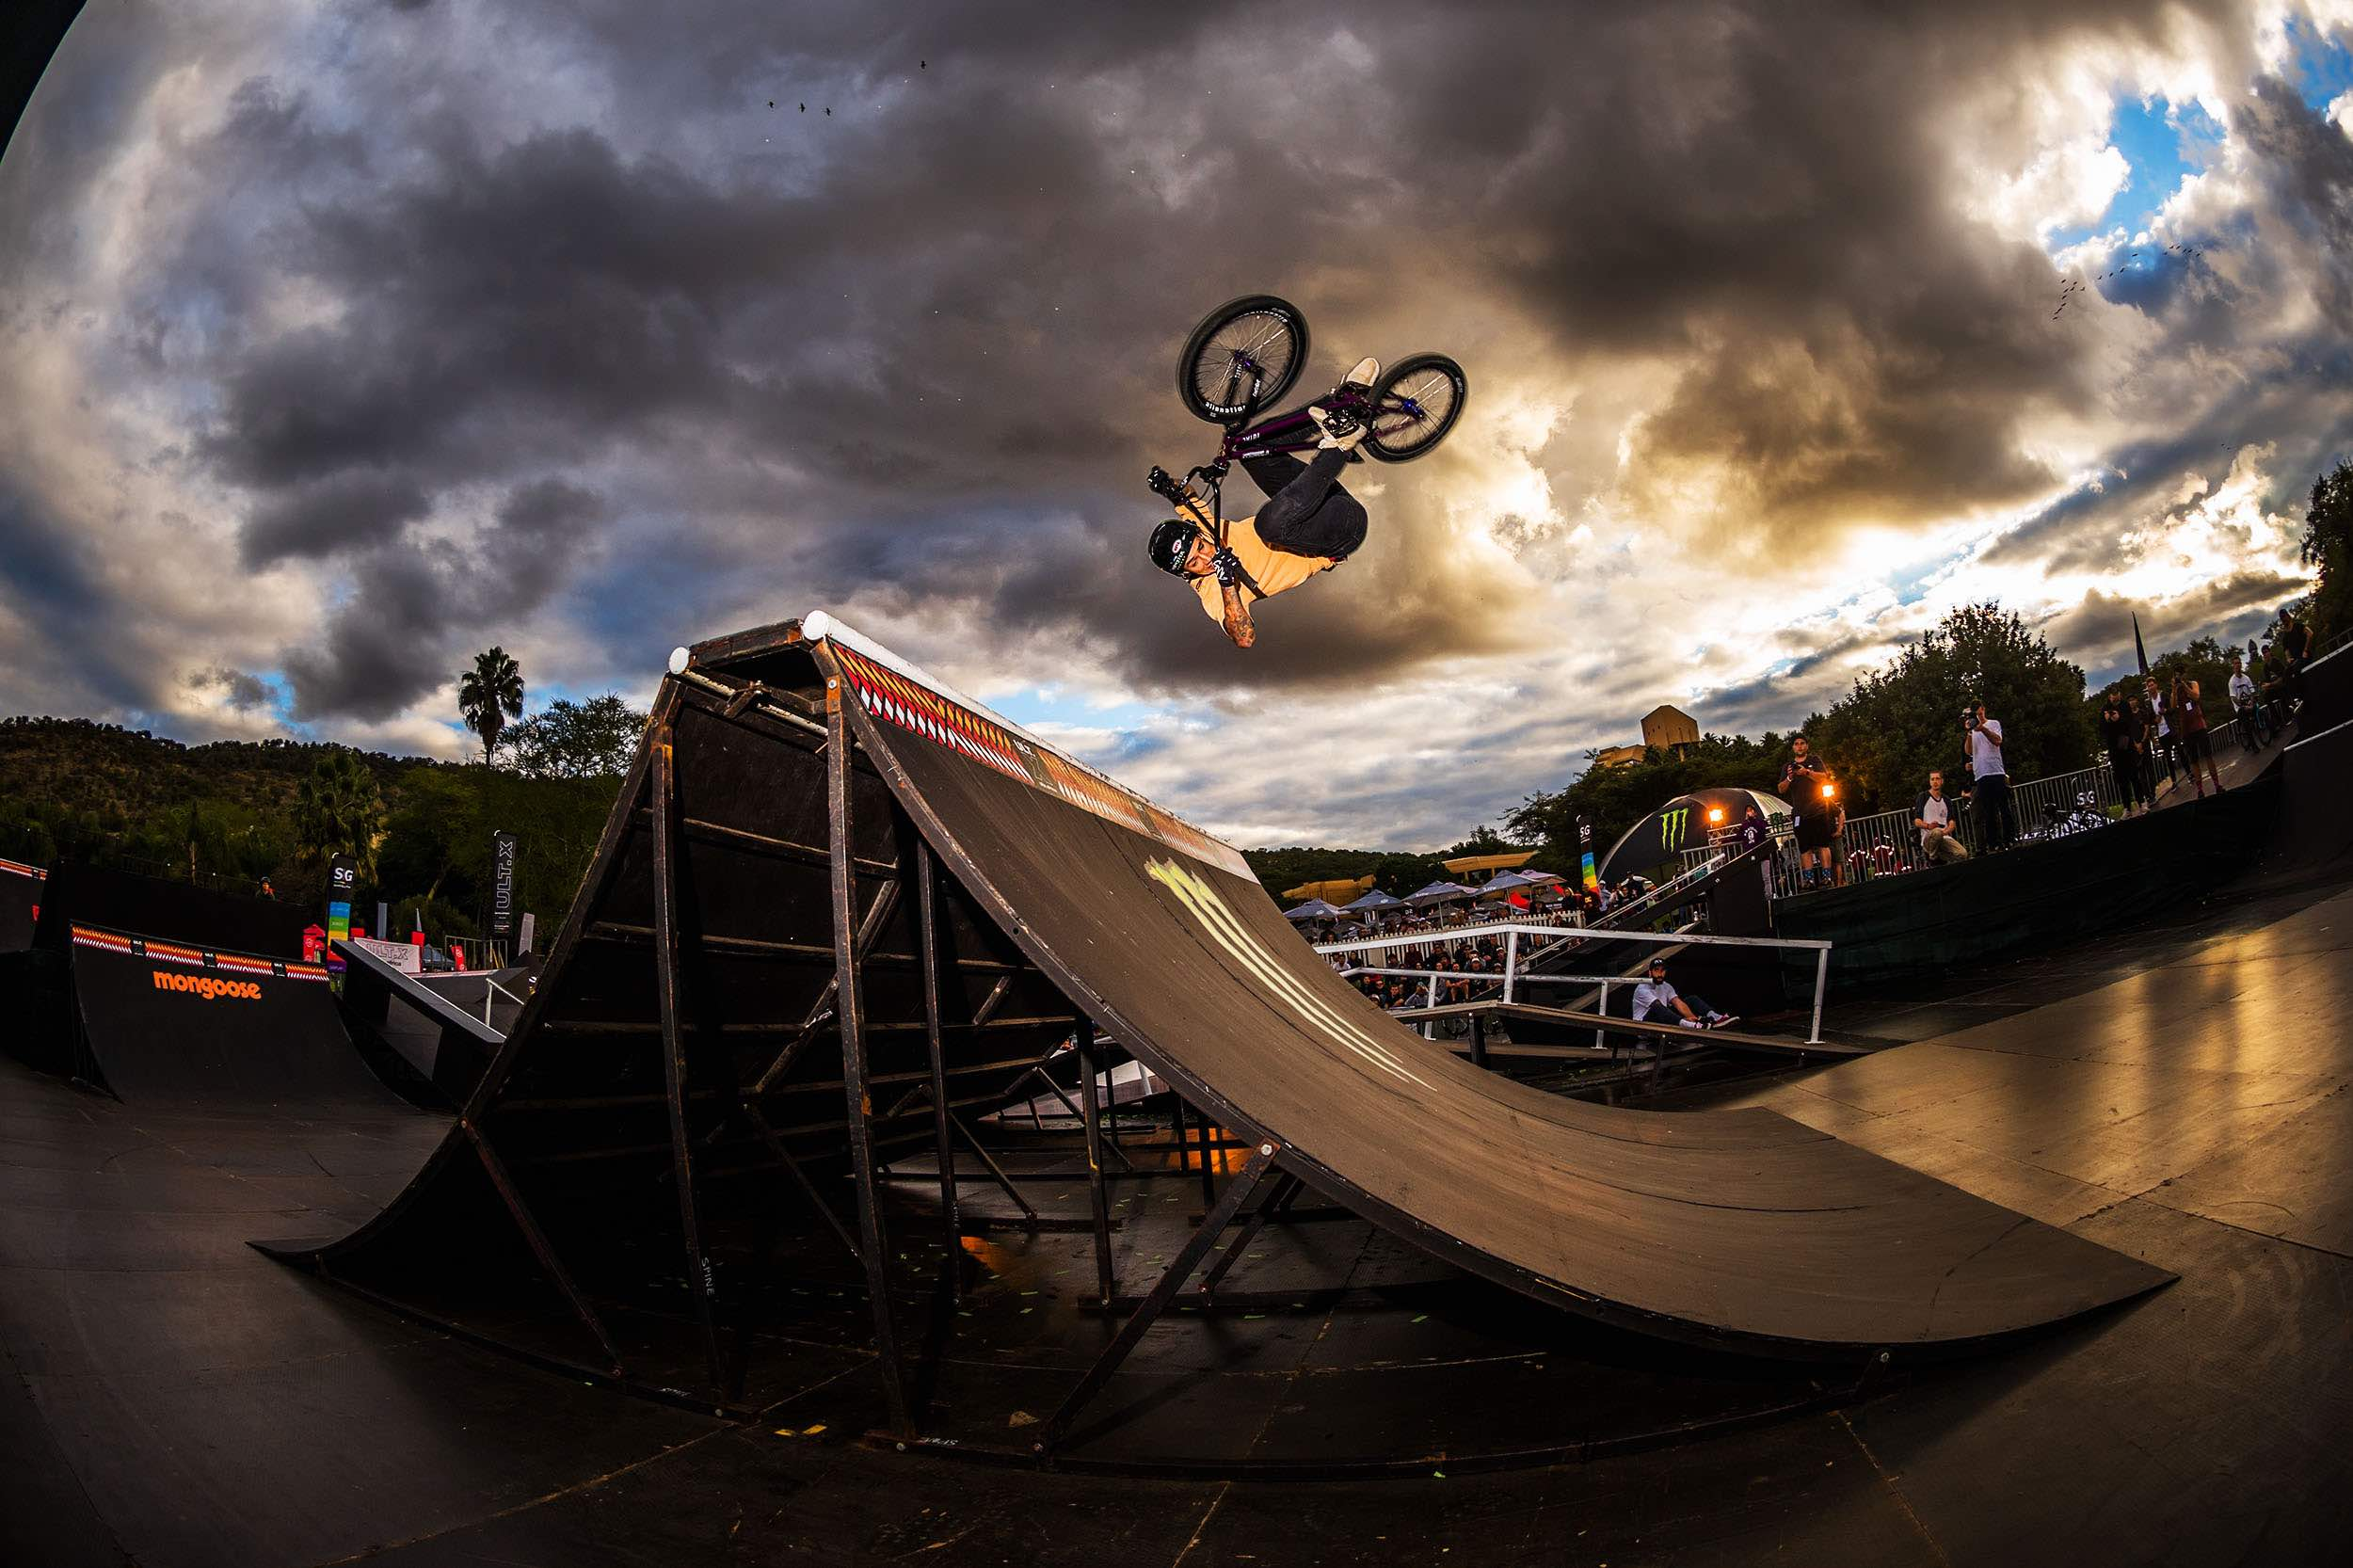 Kyle Baldock competing in the BMX contest at ULT.X 2018